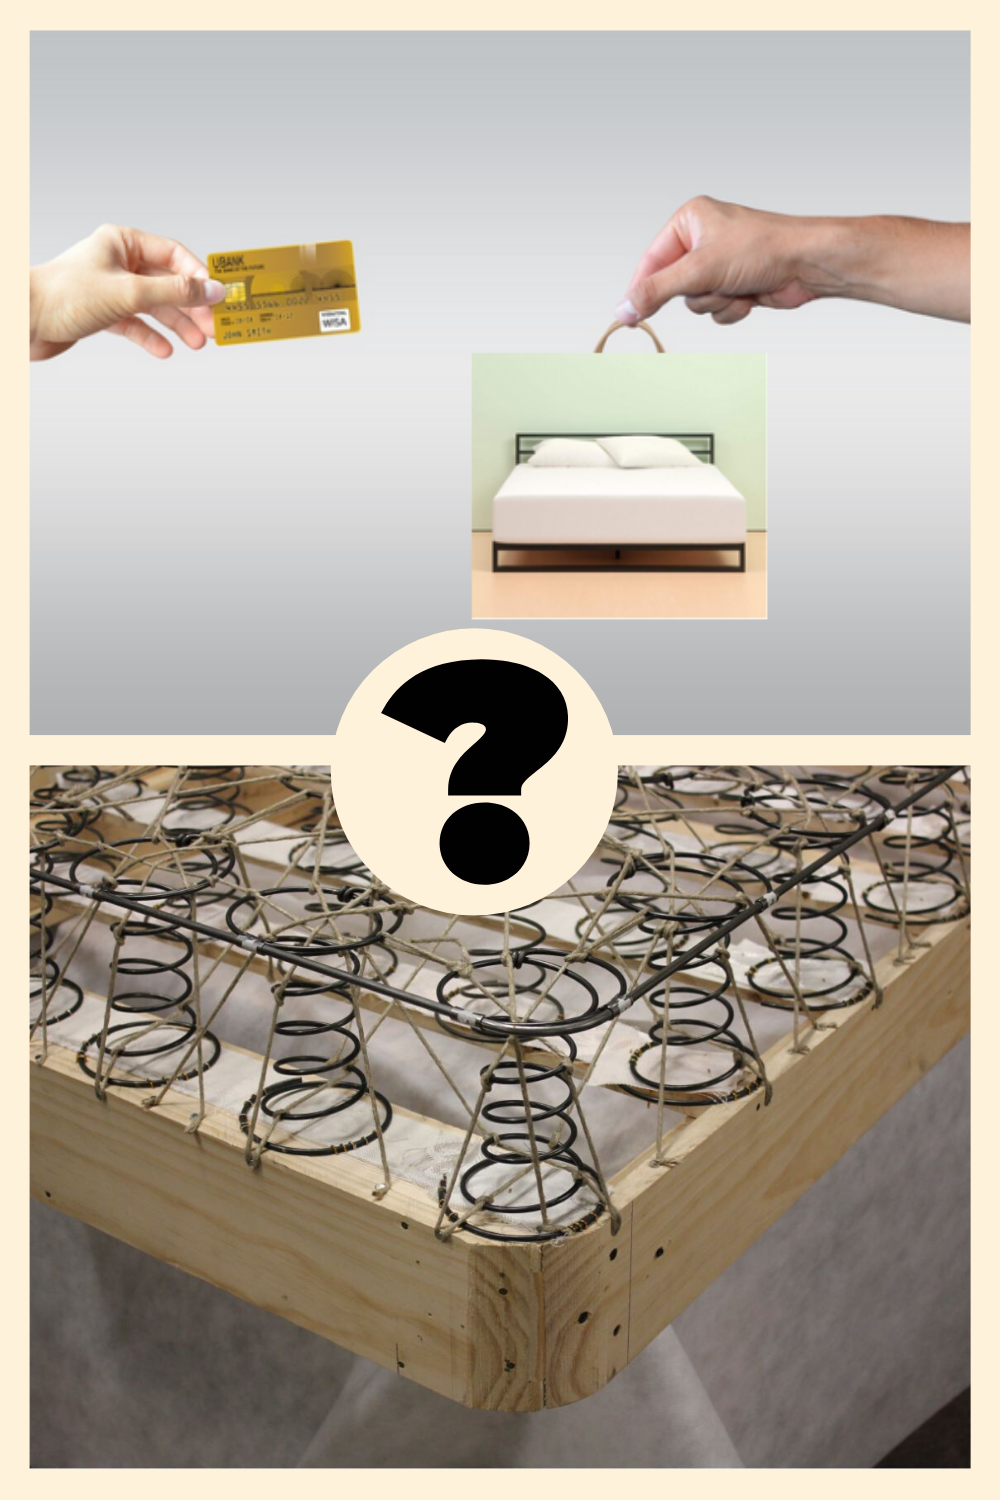 Do You Need To Replace Box Springs When Buying A New Mattress?